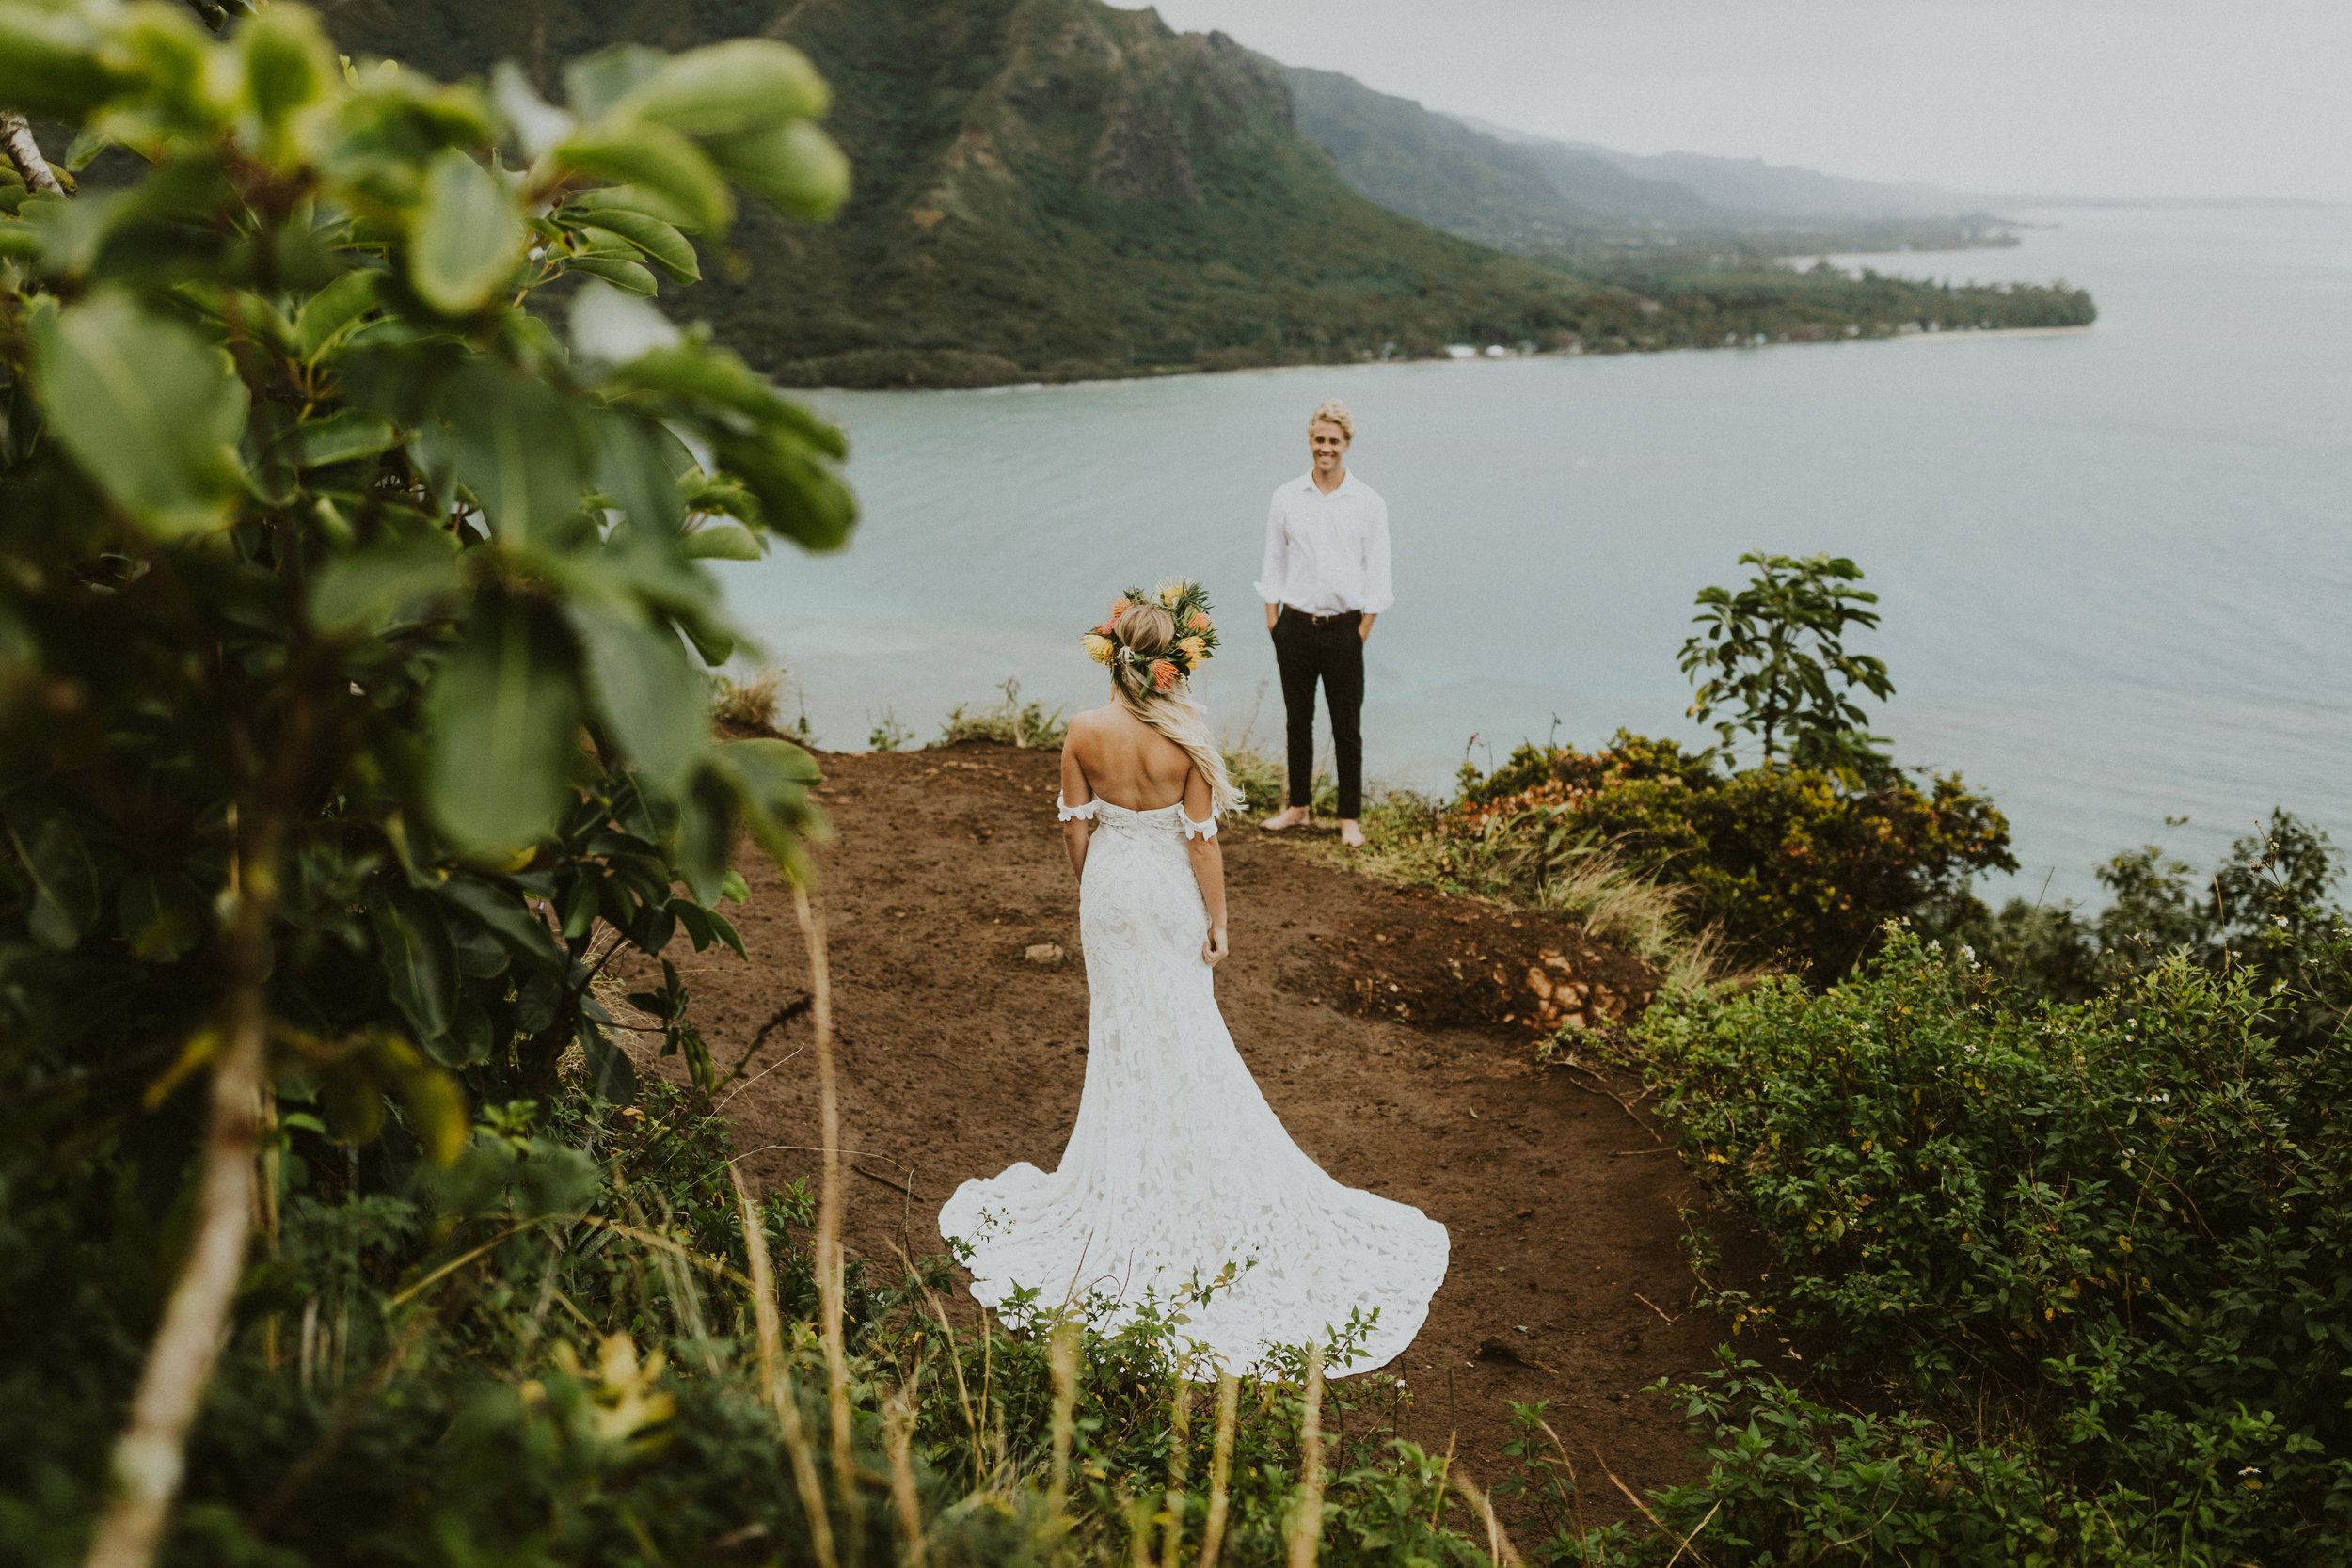 Hiring Vendors for Your Elopement